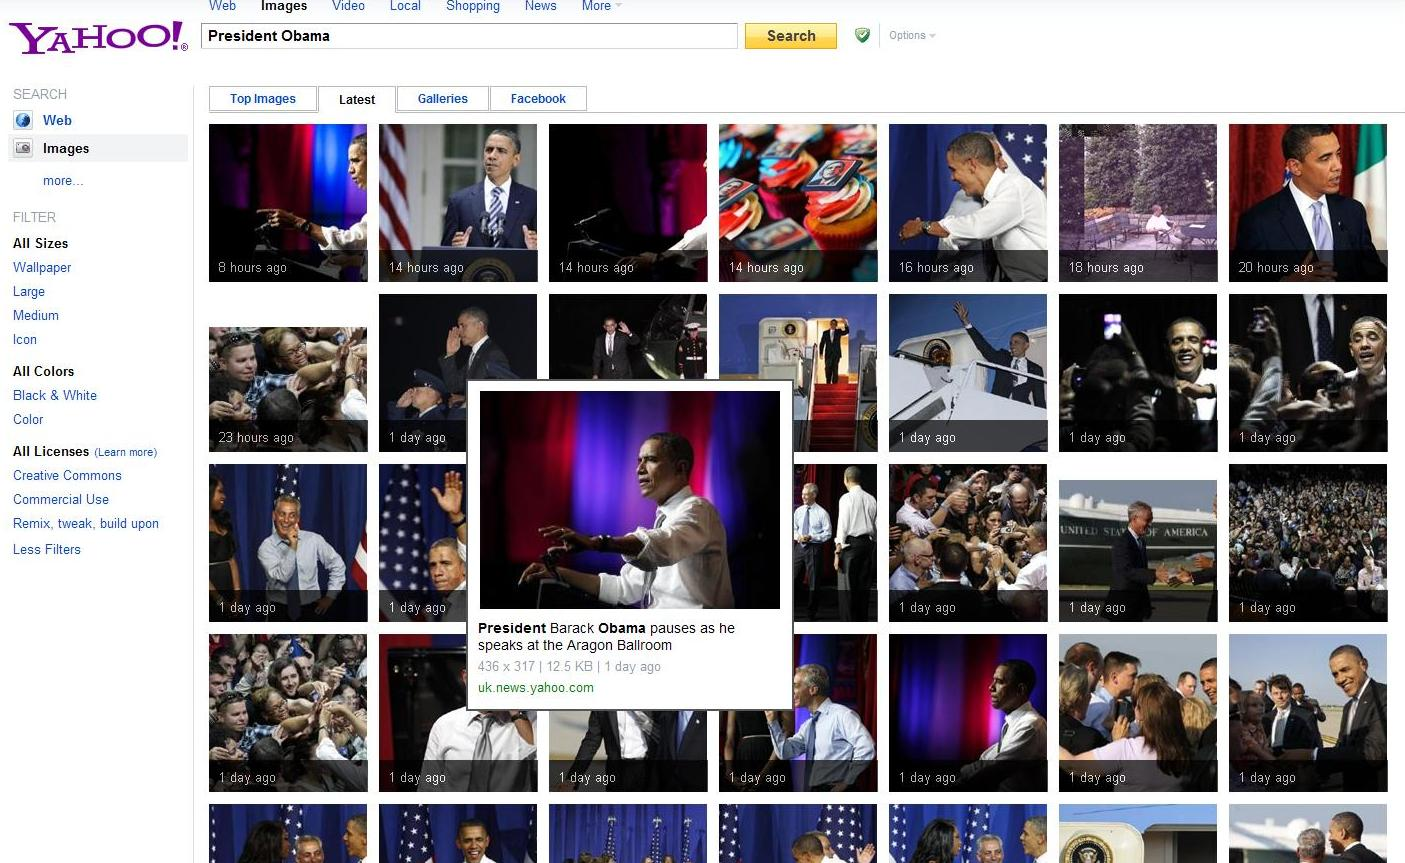 Yahoo! Images nouvelle interface